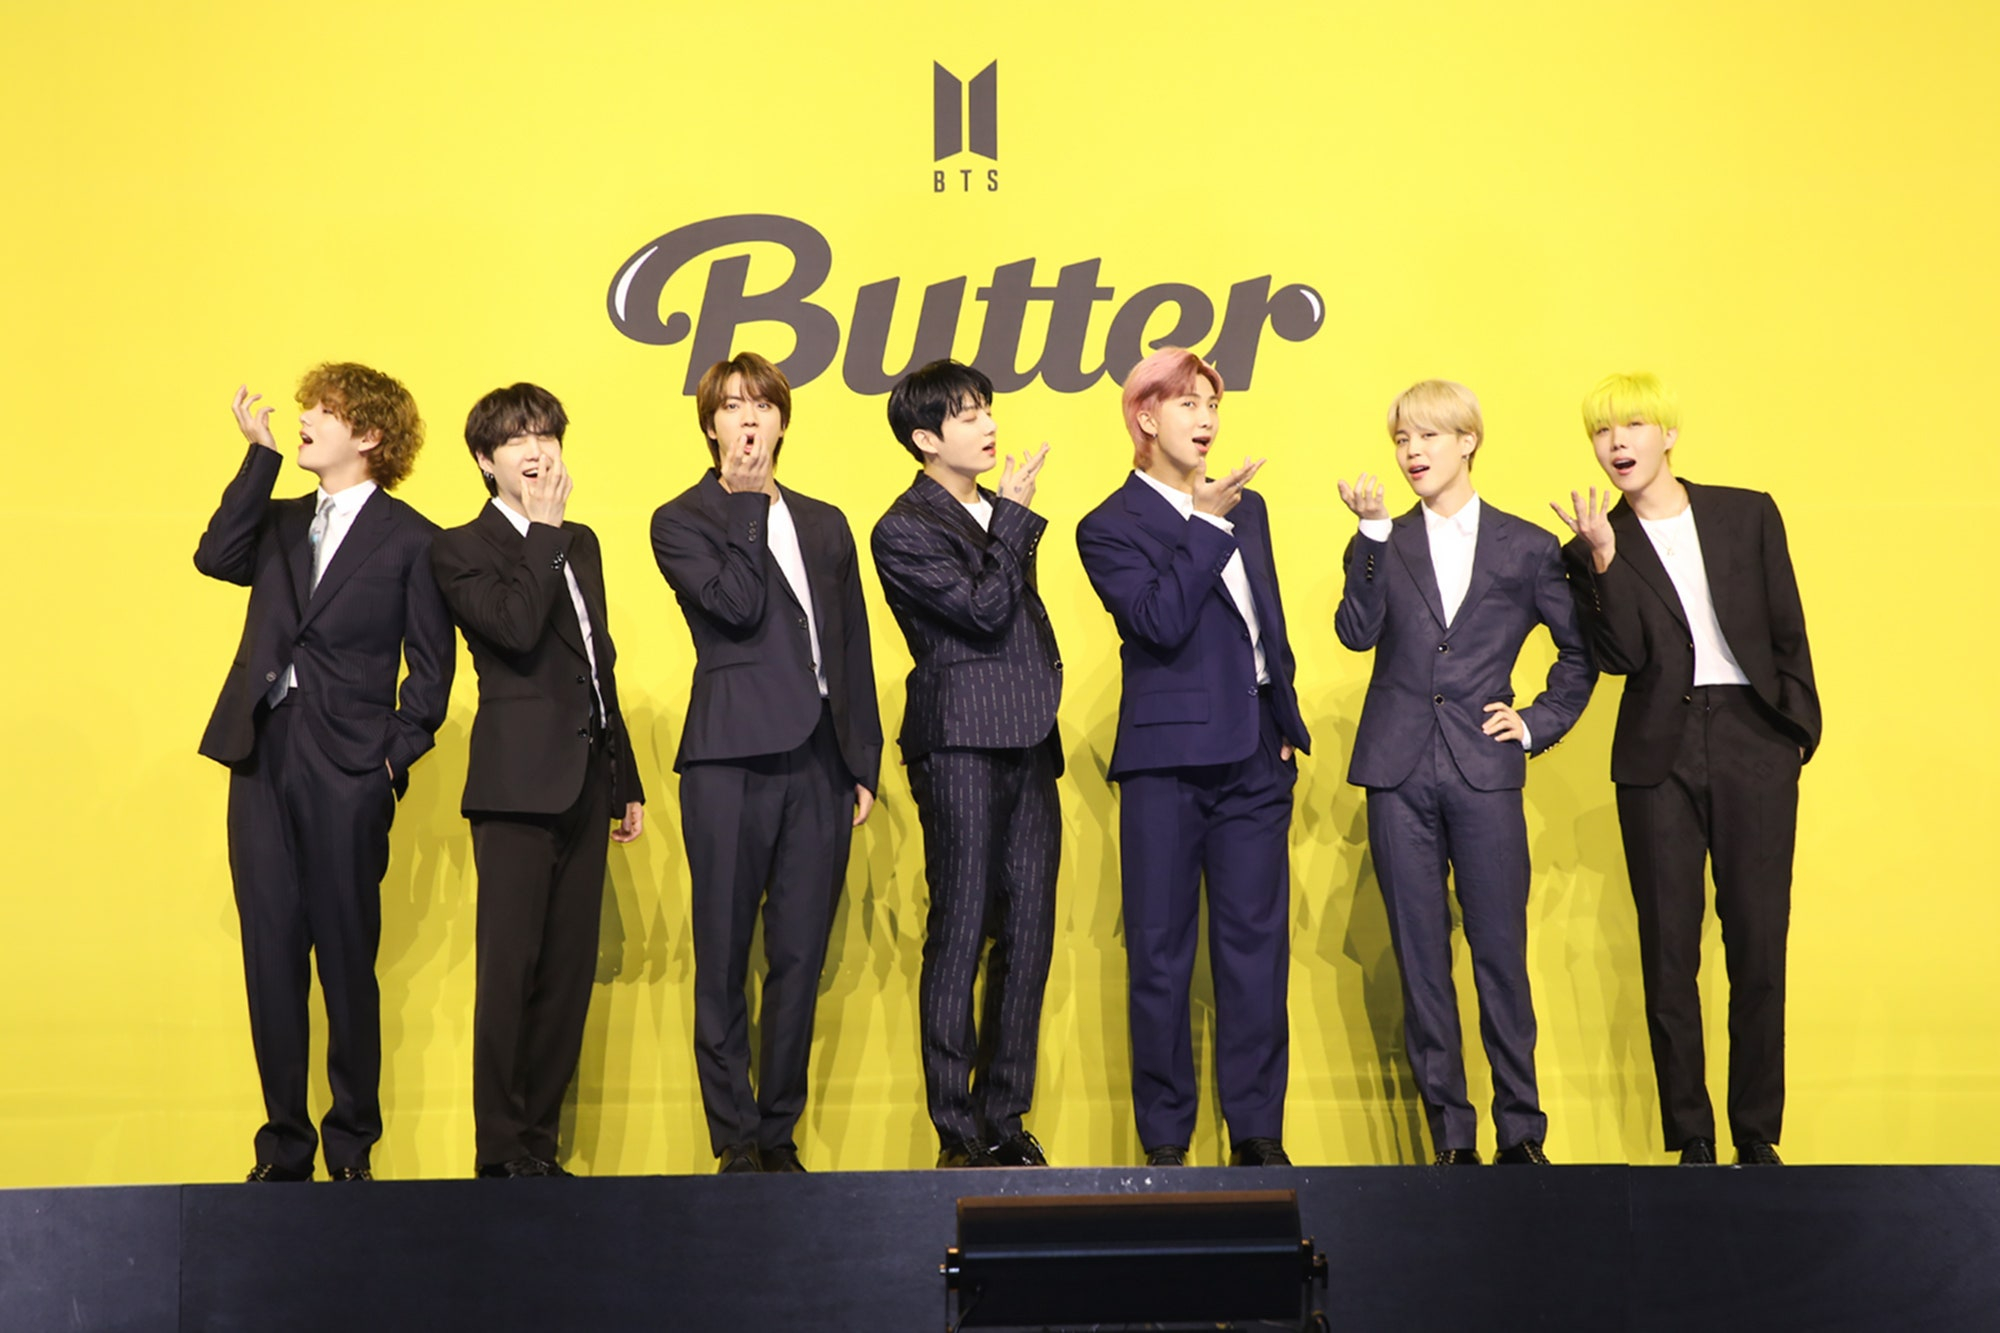 """[EXCLUSIVE] [INTERVIEW] BTS """"Butter"""" songwriters Alex Bilo and Jenna Andrews unpack the anatomy of the song"""